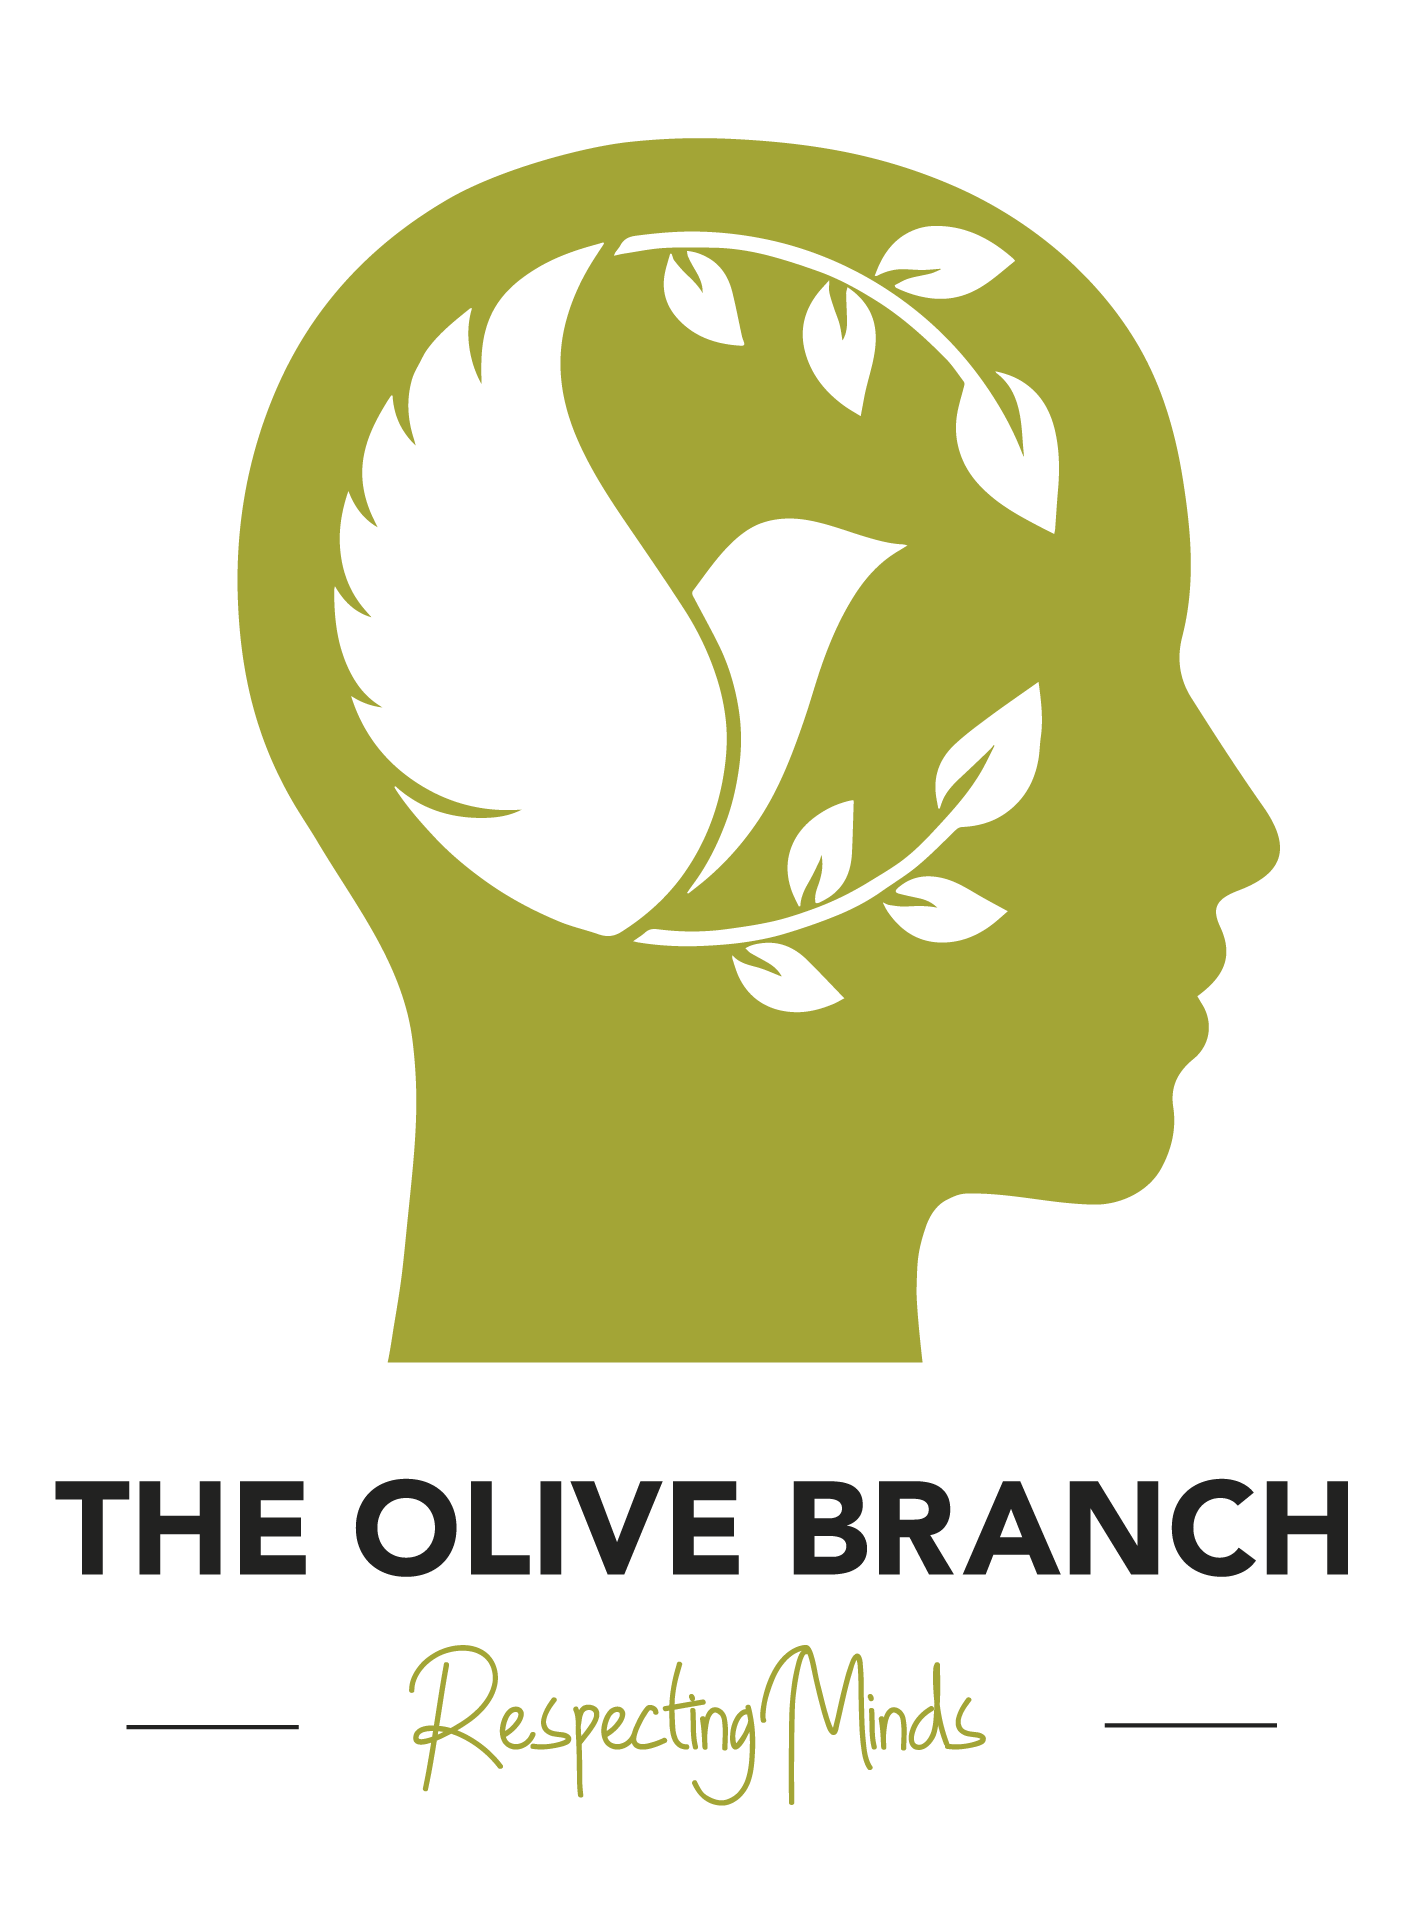 The Olive Branch - Respecting Minds